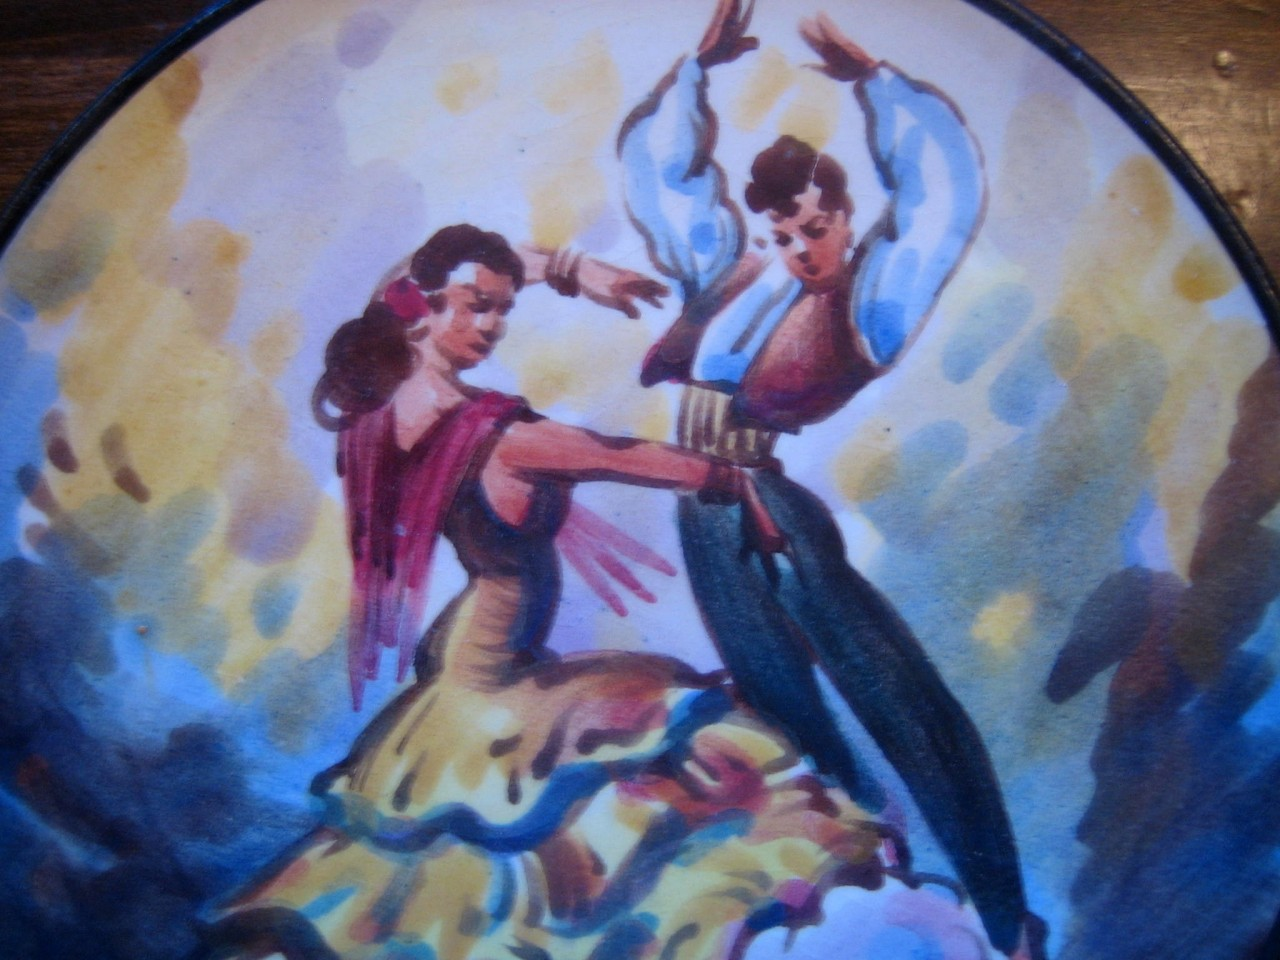 Hand Painted Spain Man Woman Flamenco Dancer Tile Vintage Plate Center www.DecorativeDishes.net